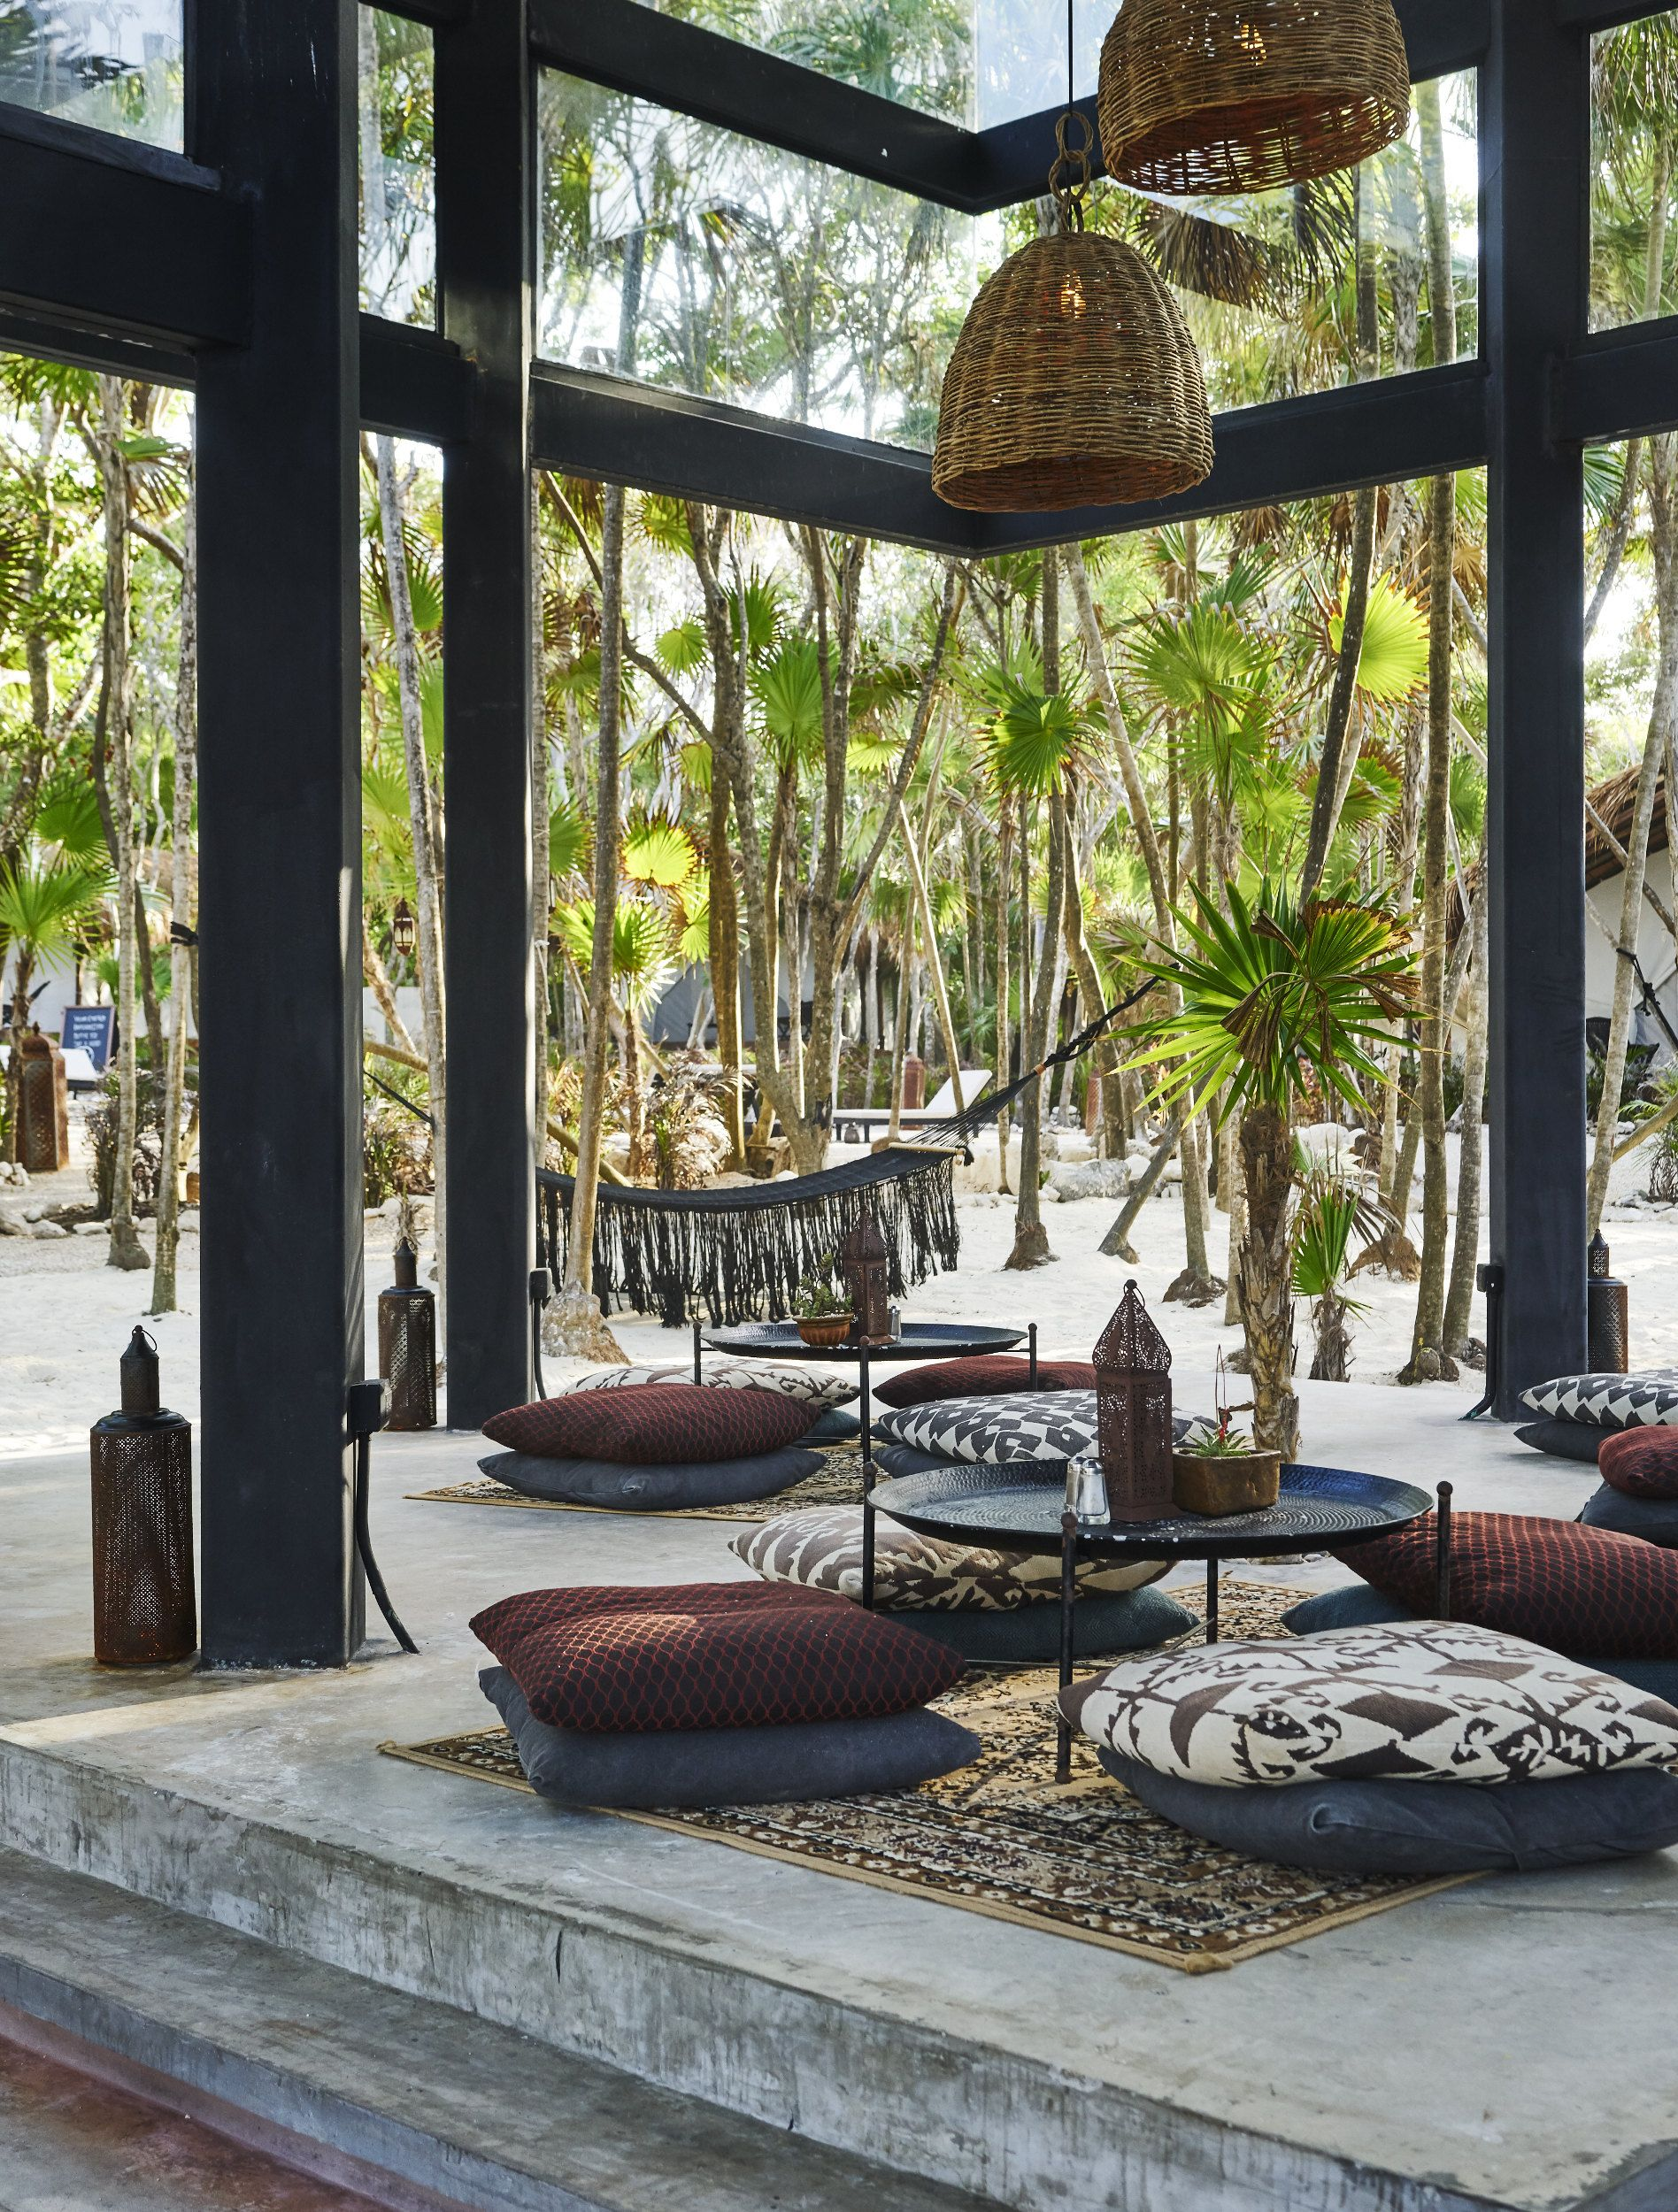 Hotel Interior: Mexico's New Rustic Beach Hotel Is Designed With Wellness